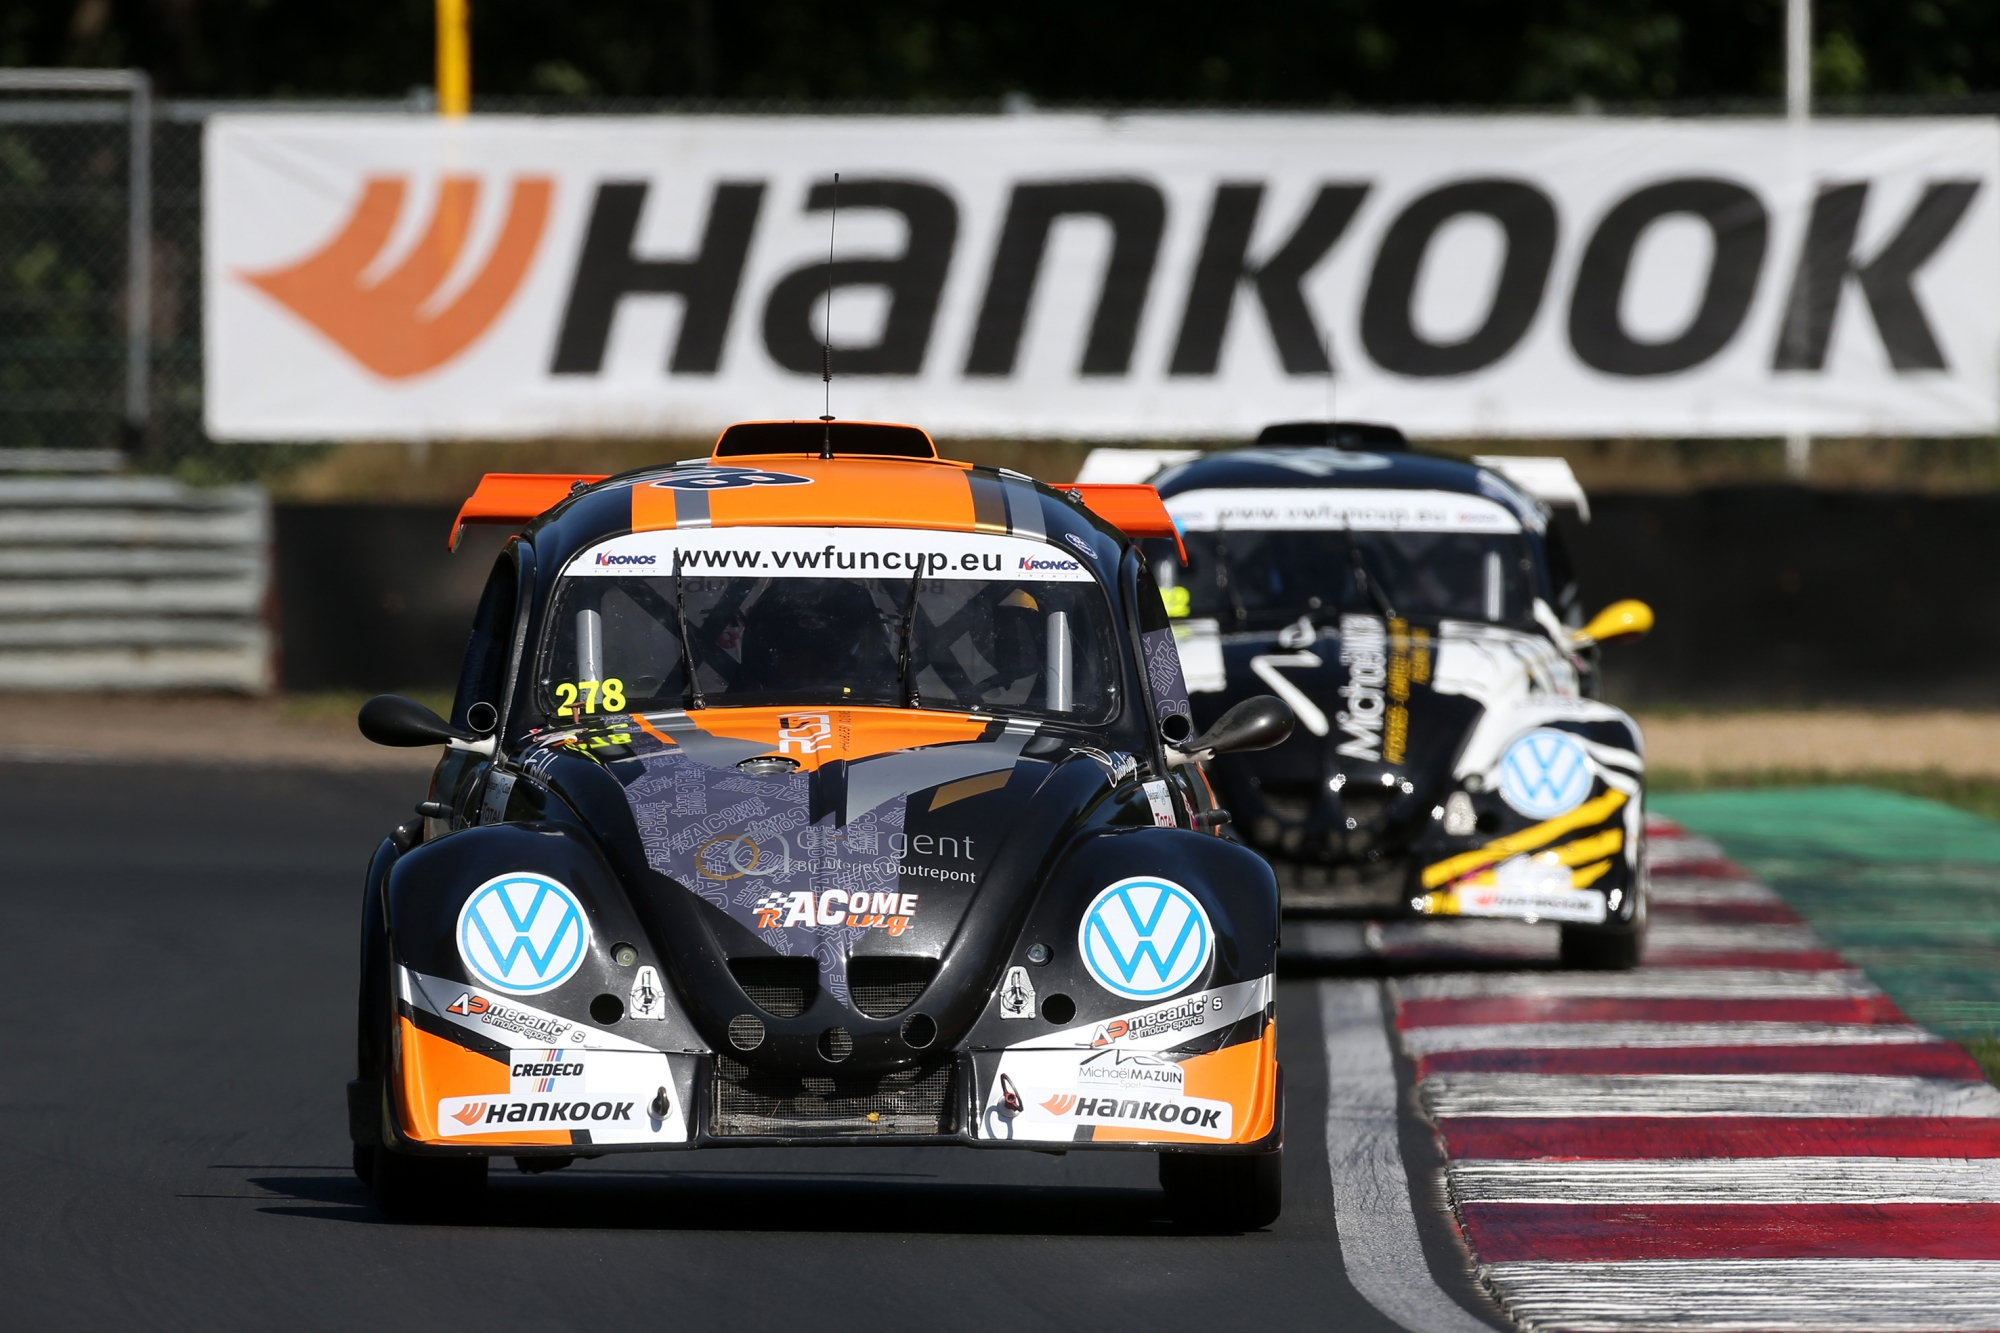 image 1 - La VW Fun Cup powered by Hankook prendra un nouveau départ en 2021 !